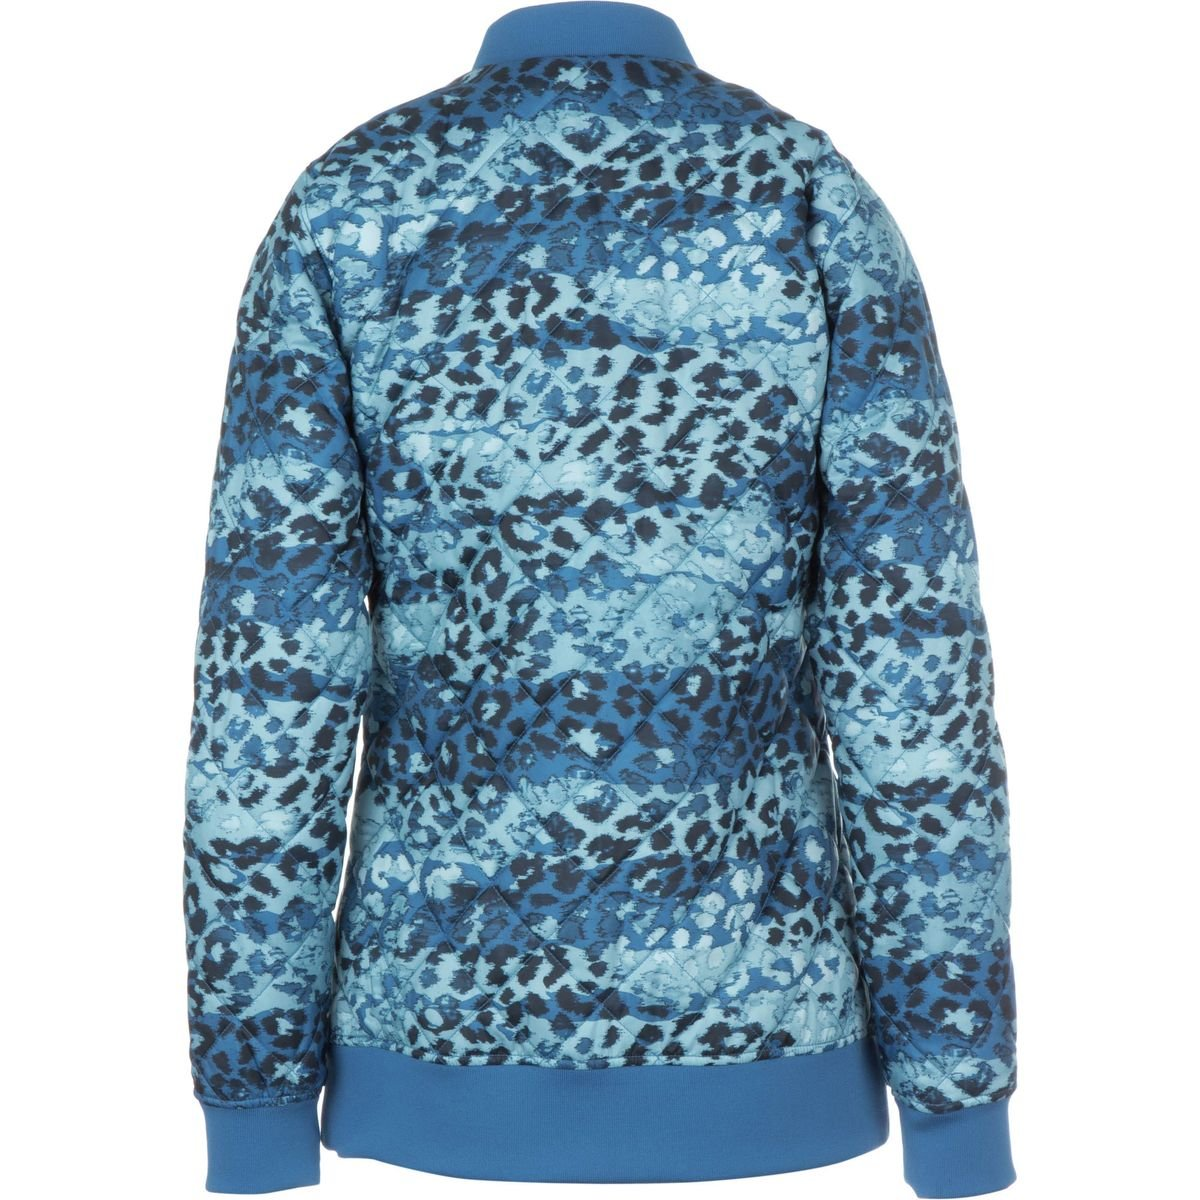 36a4aad763e4 The North Face Anna Insulated Jacket - Women's Dish Blue Leopard Print, S:  Amazon.co.uk: Clothing